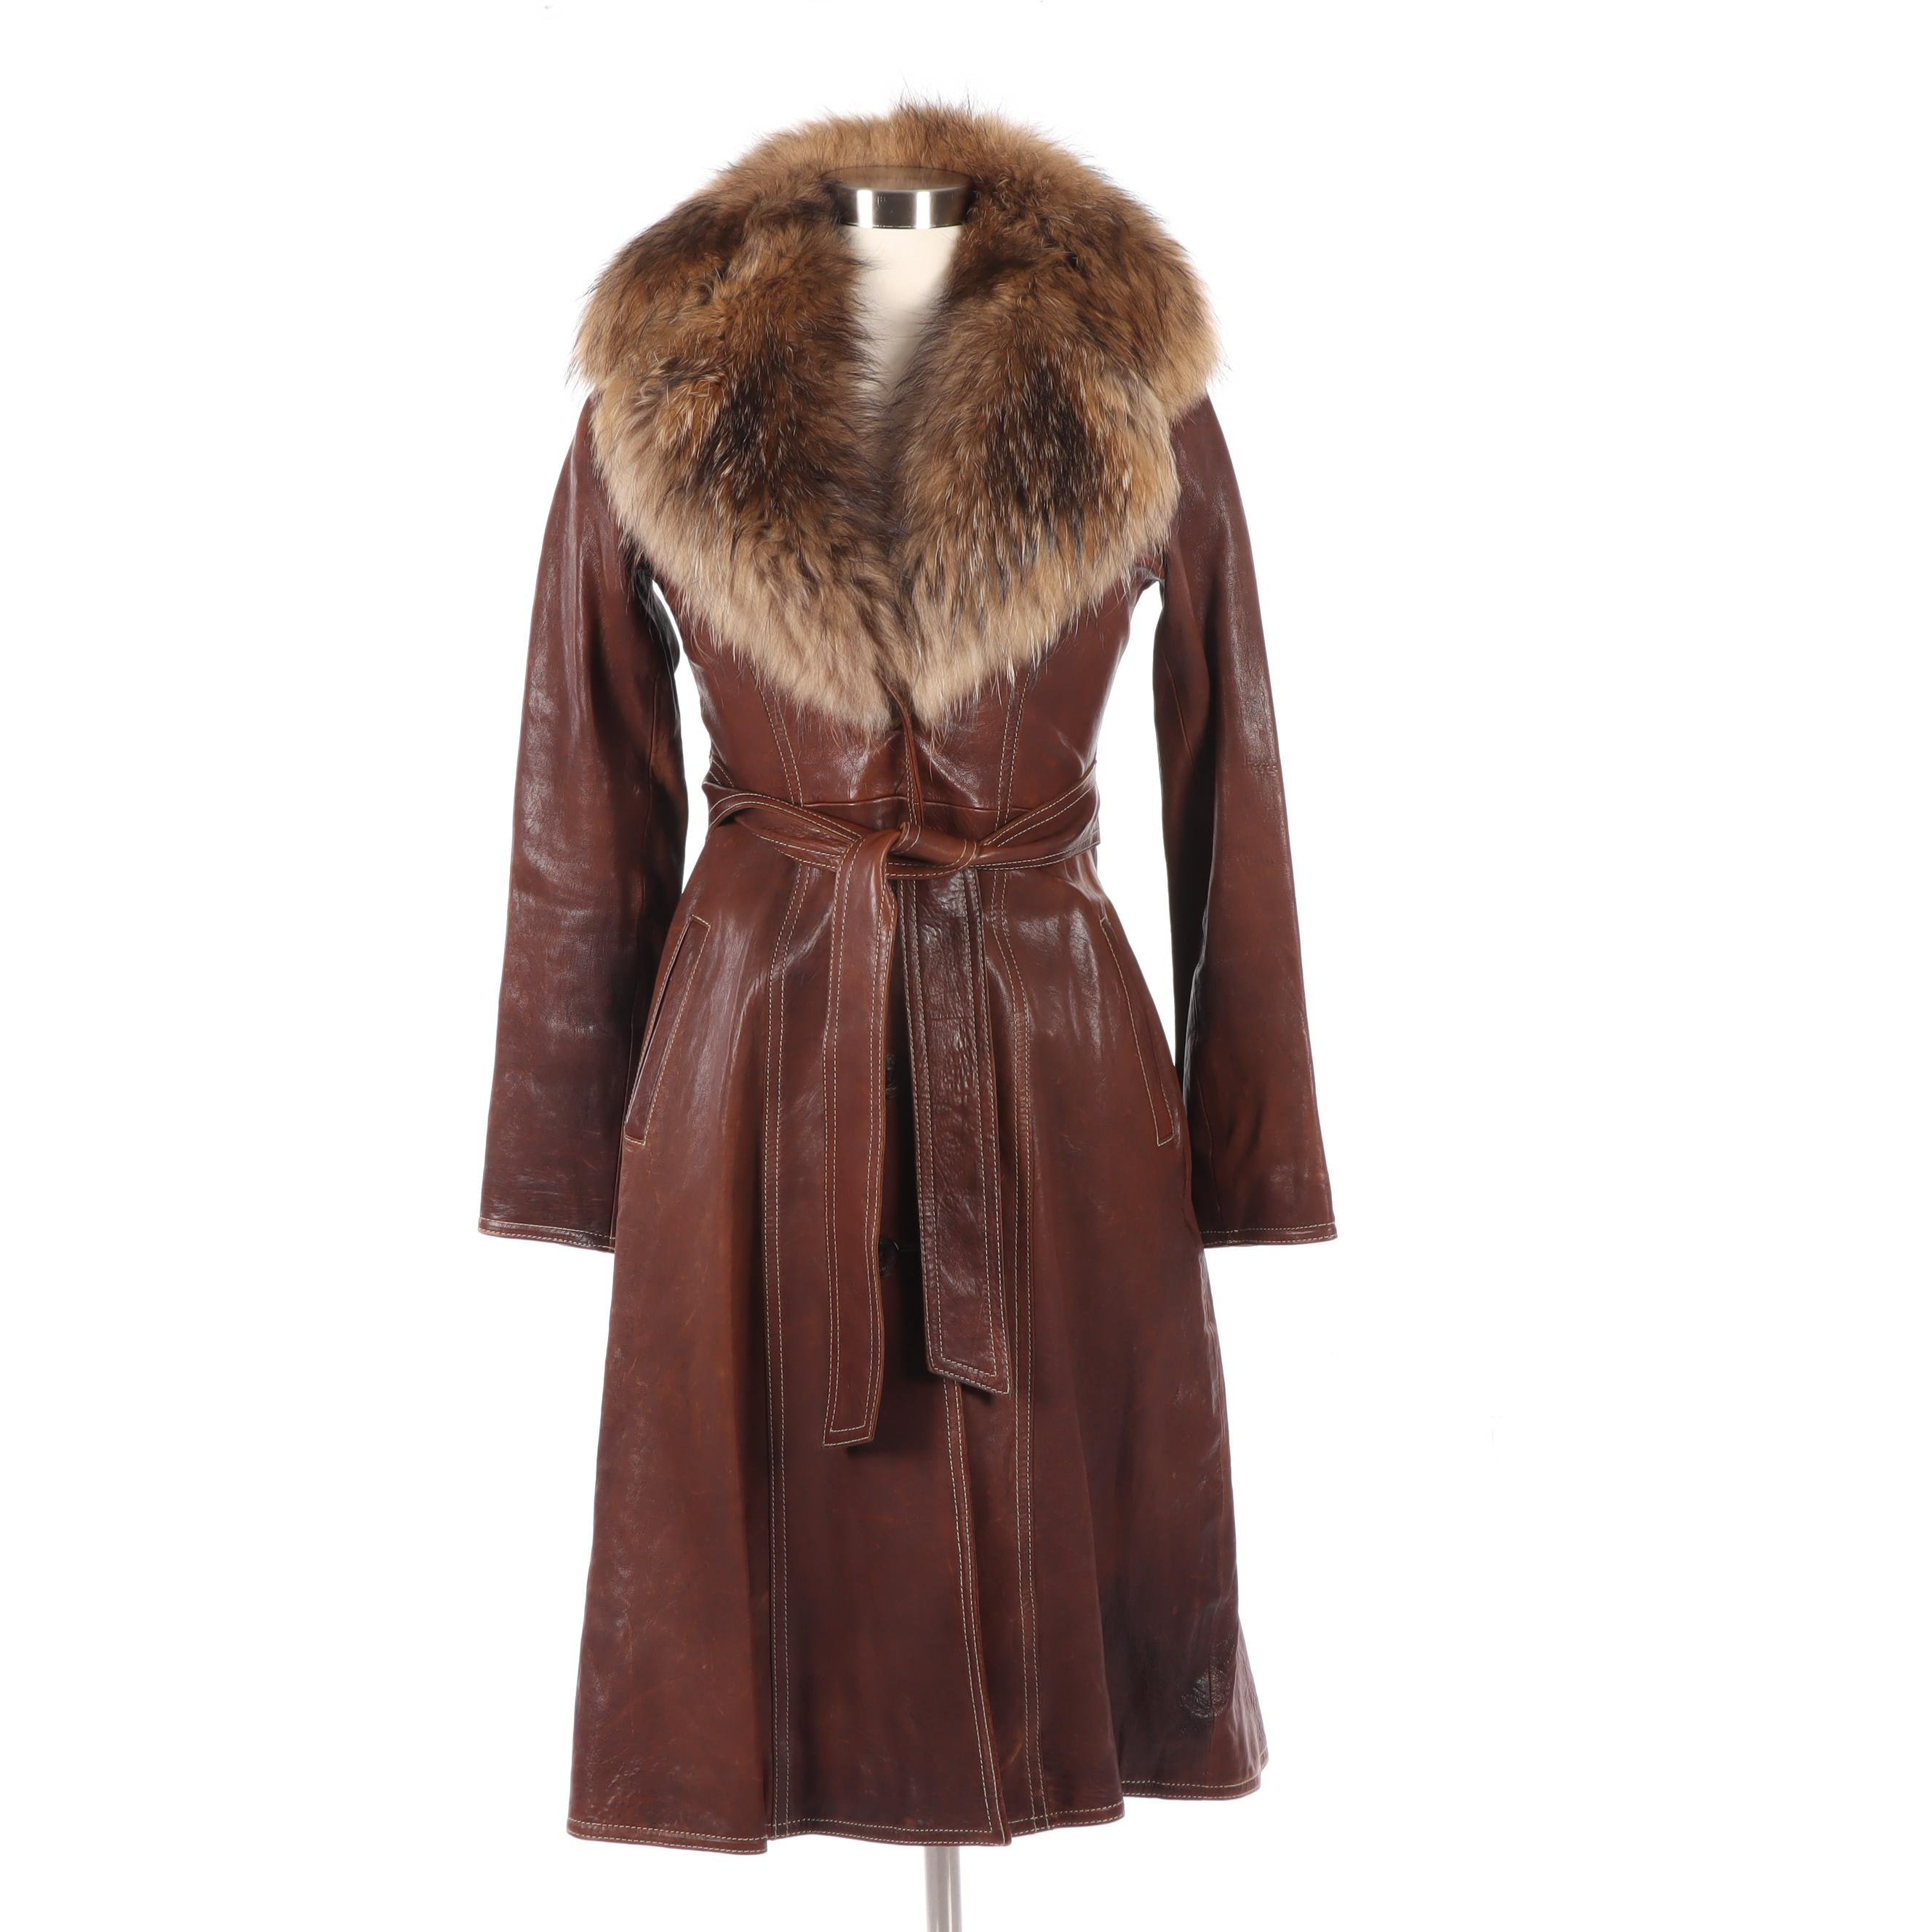 Andrew Marc Brown Leather Trench Coat with Finnish Raccoon Fur Collar